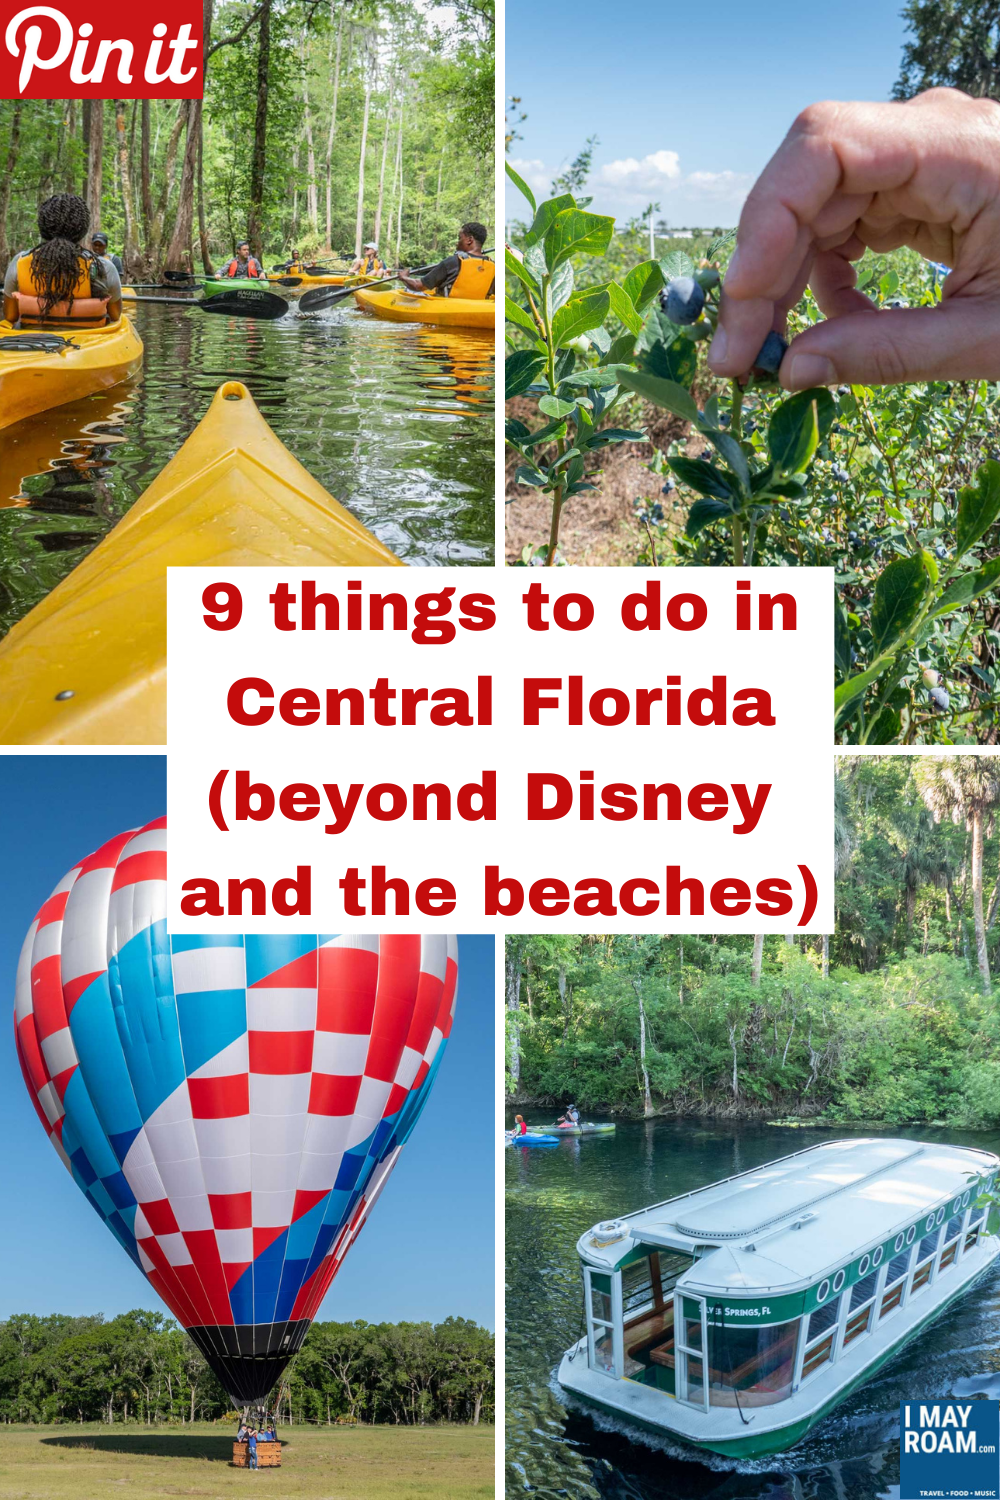 Pinterest 9 things to do in Central Florida beyond Disney and the beaches